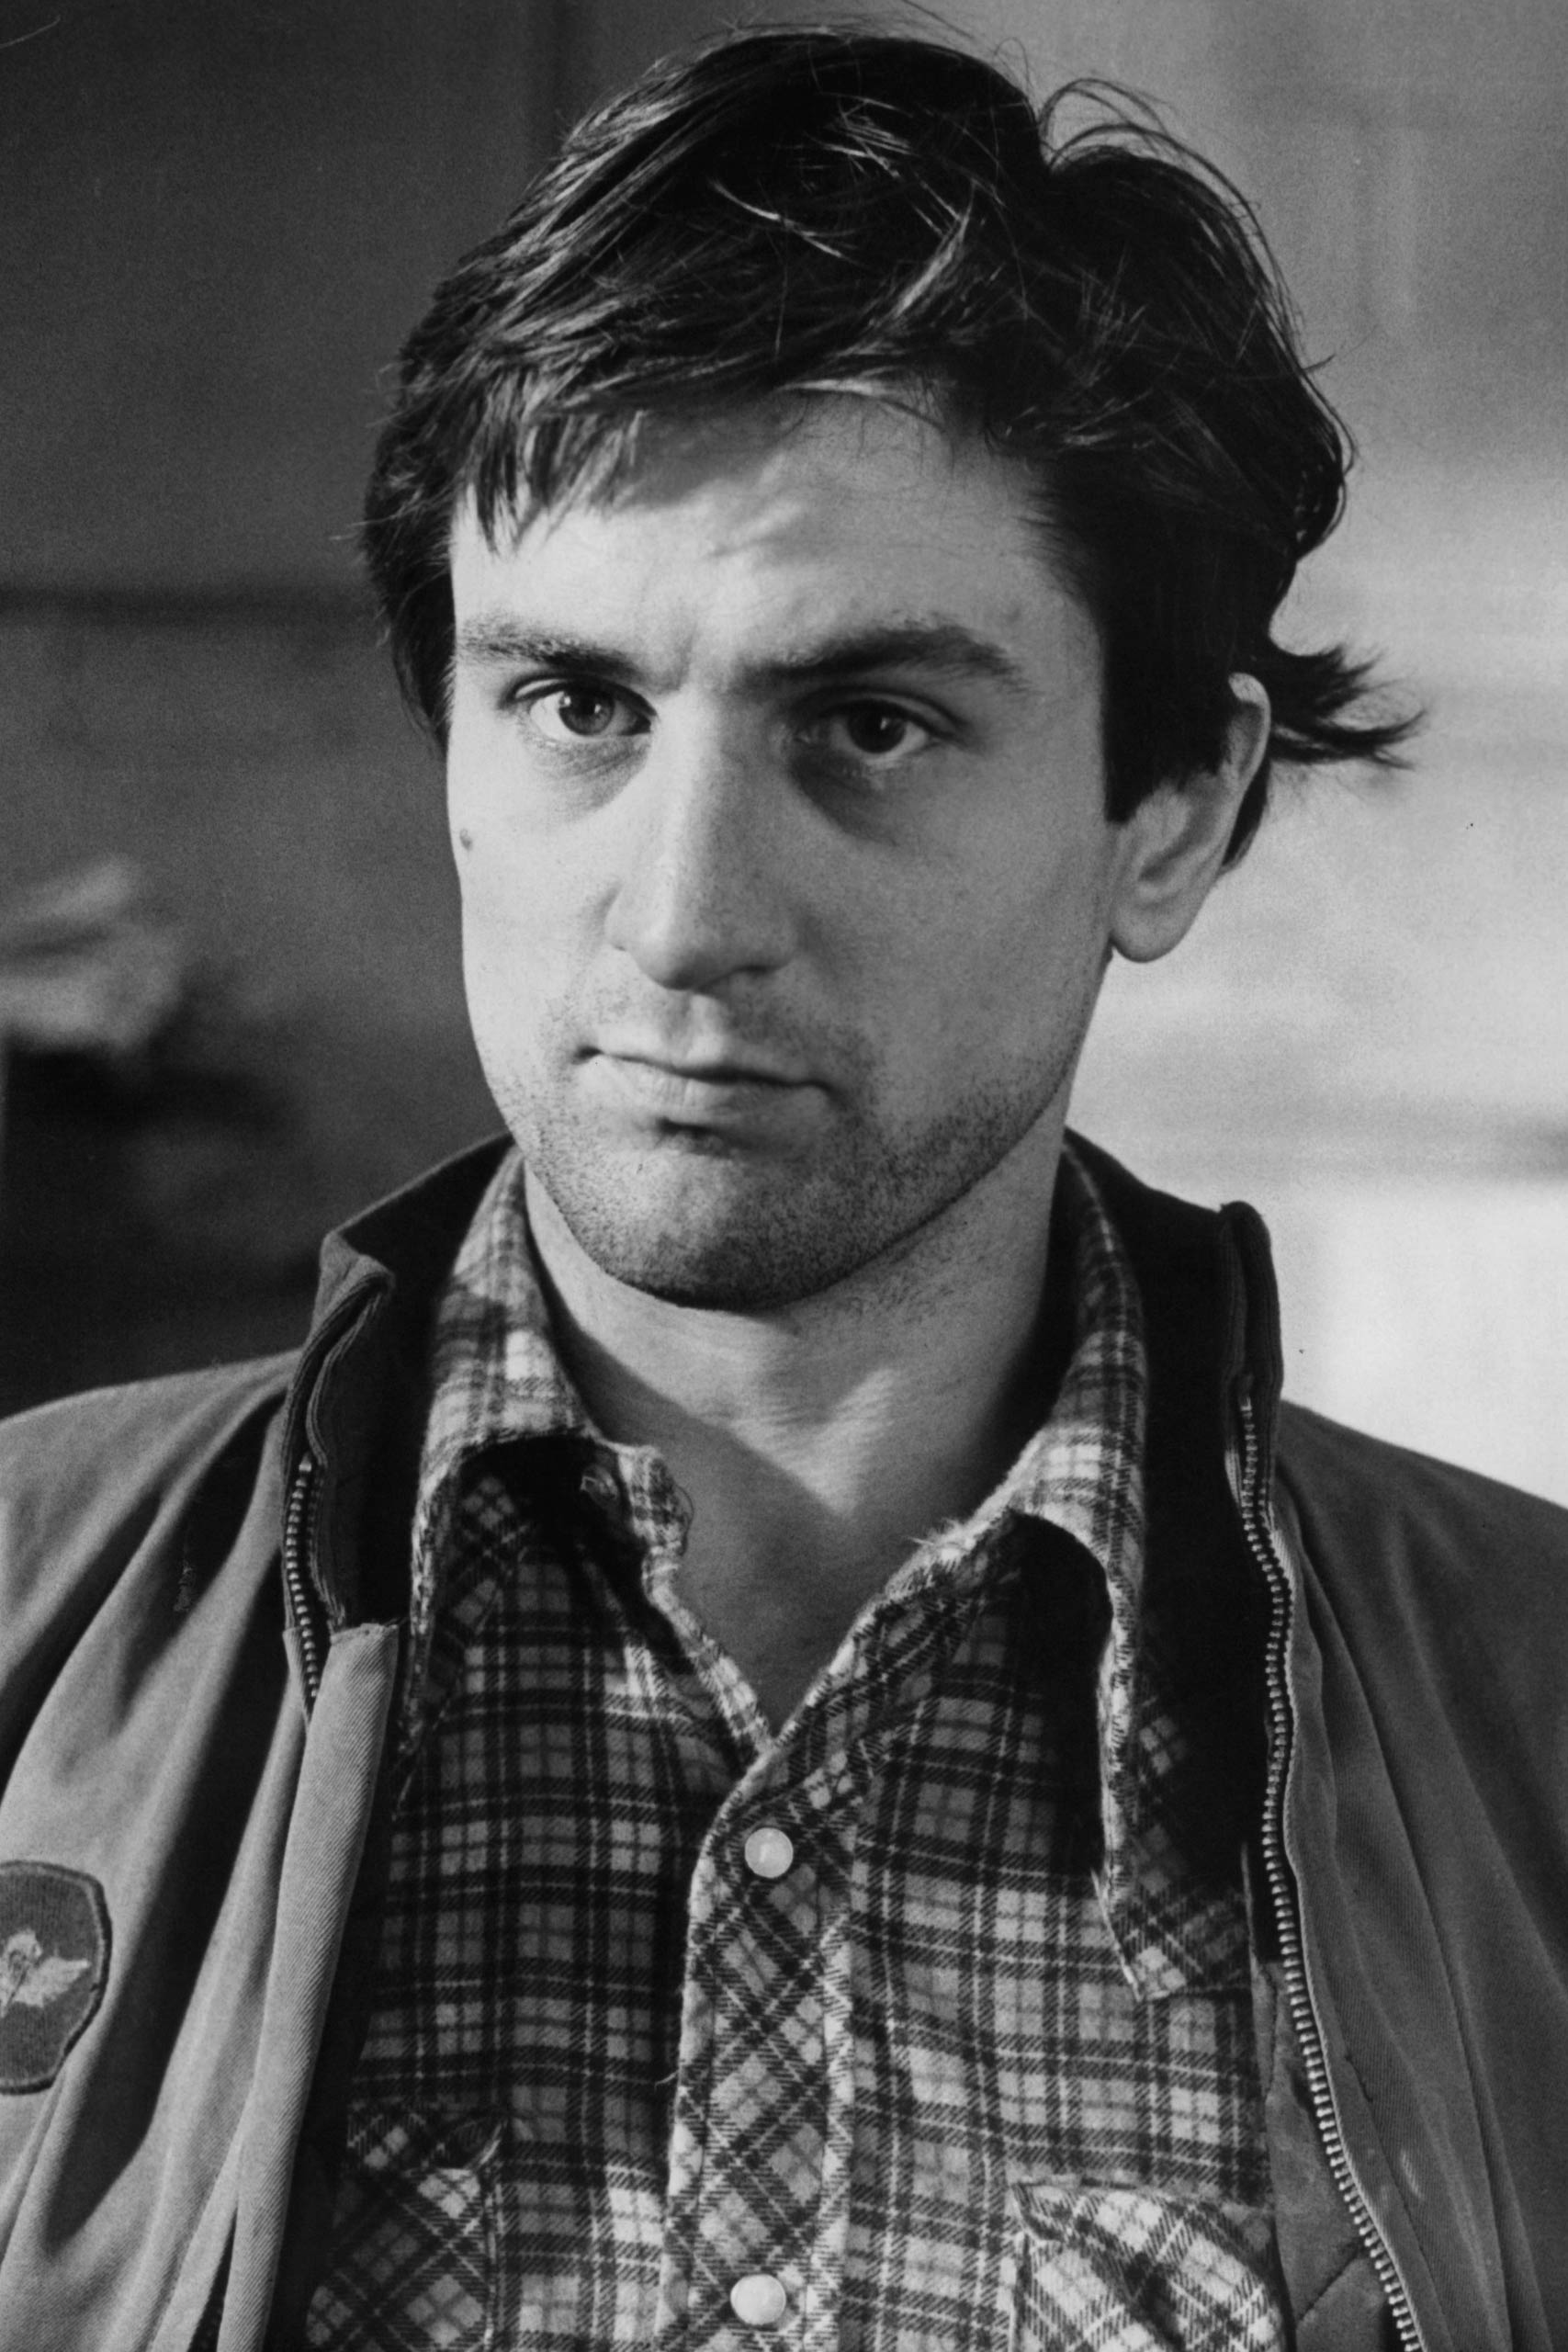 <strong>Robert De Niro</strong> De Niro had several roles in minor films in the 60s, before making his mark on Hollywood playing Vito Corleone in The <i>Godfather: Part II</i>.